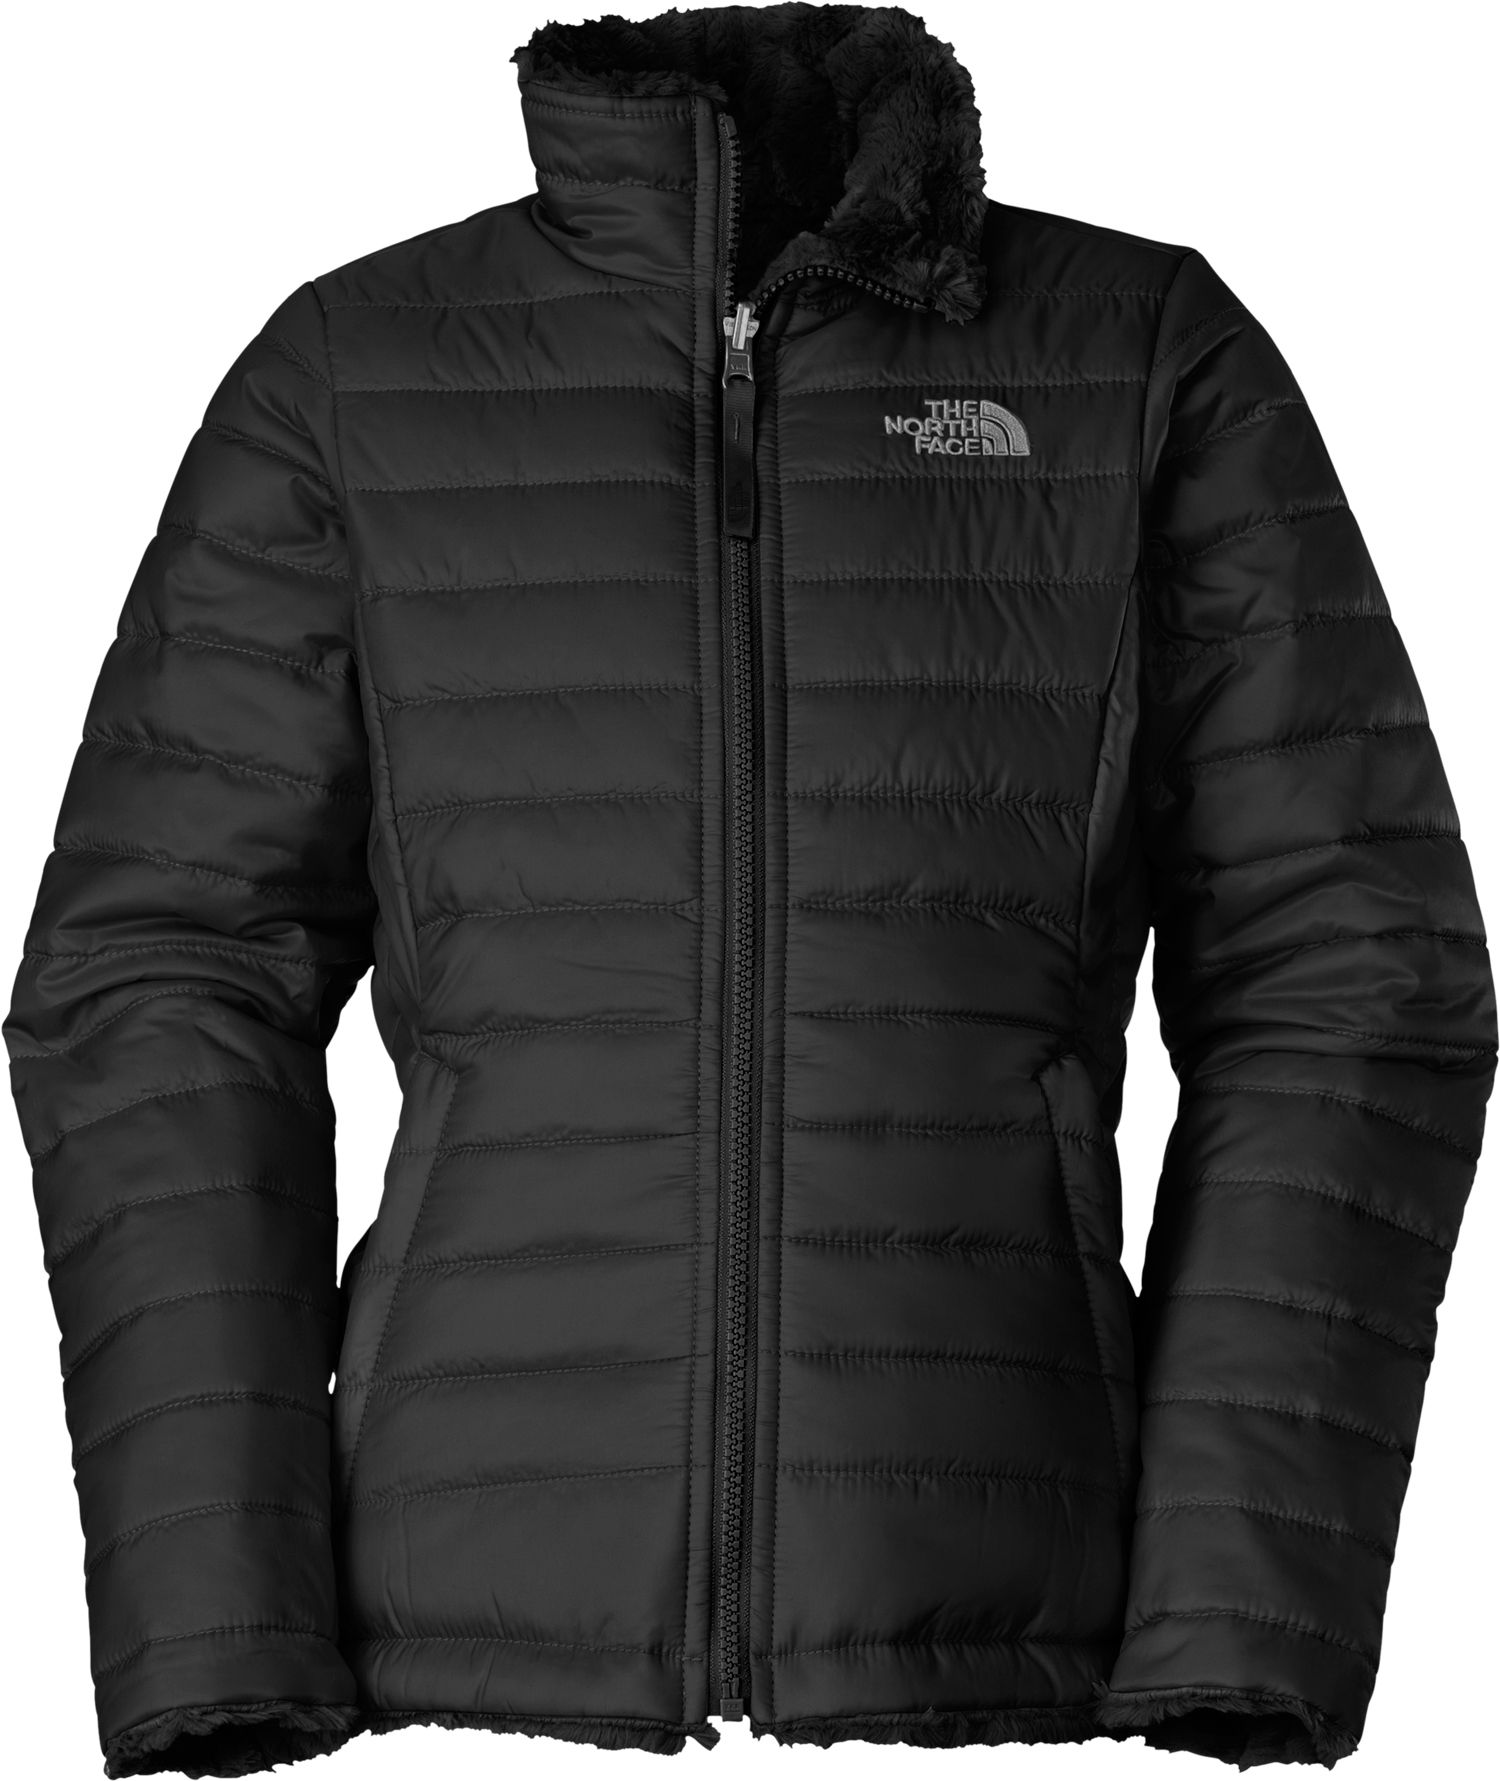 bb9be68ba The North Face Girls' Reversible Mossbud Swirl Insulated Jacket ...